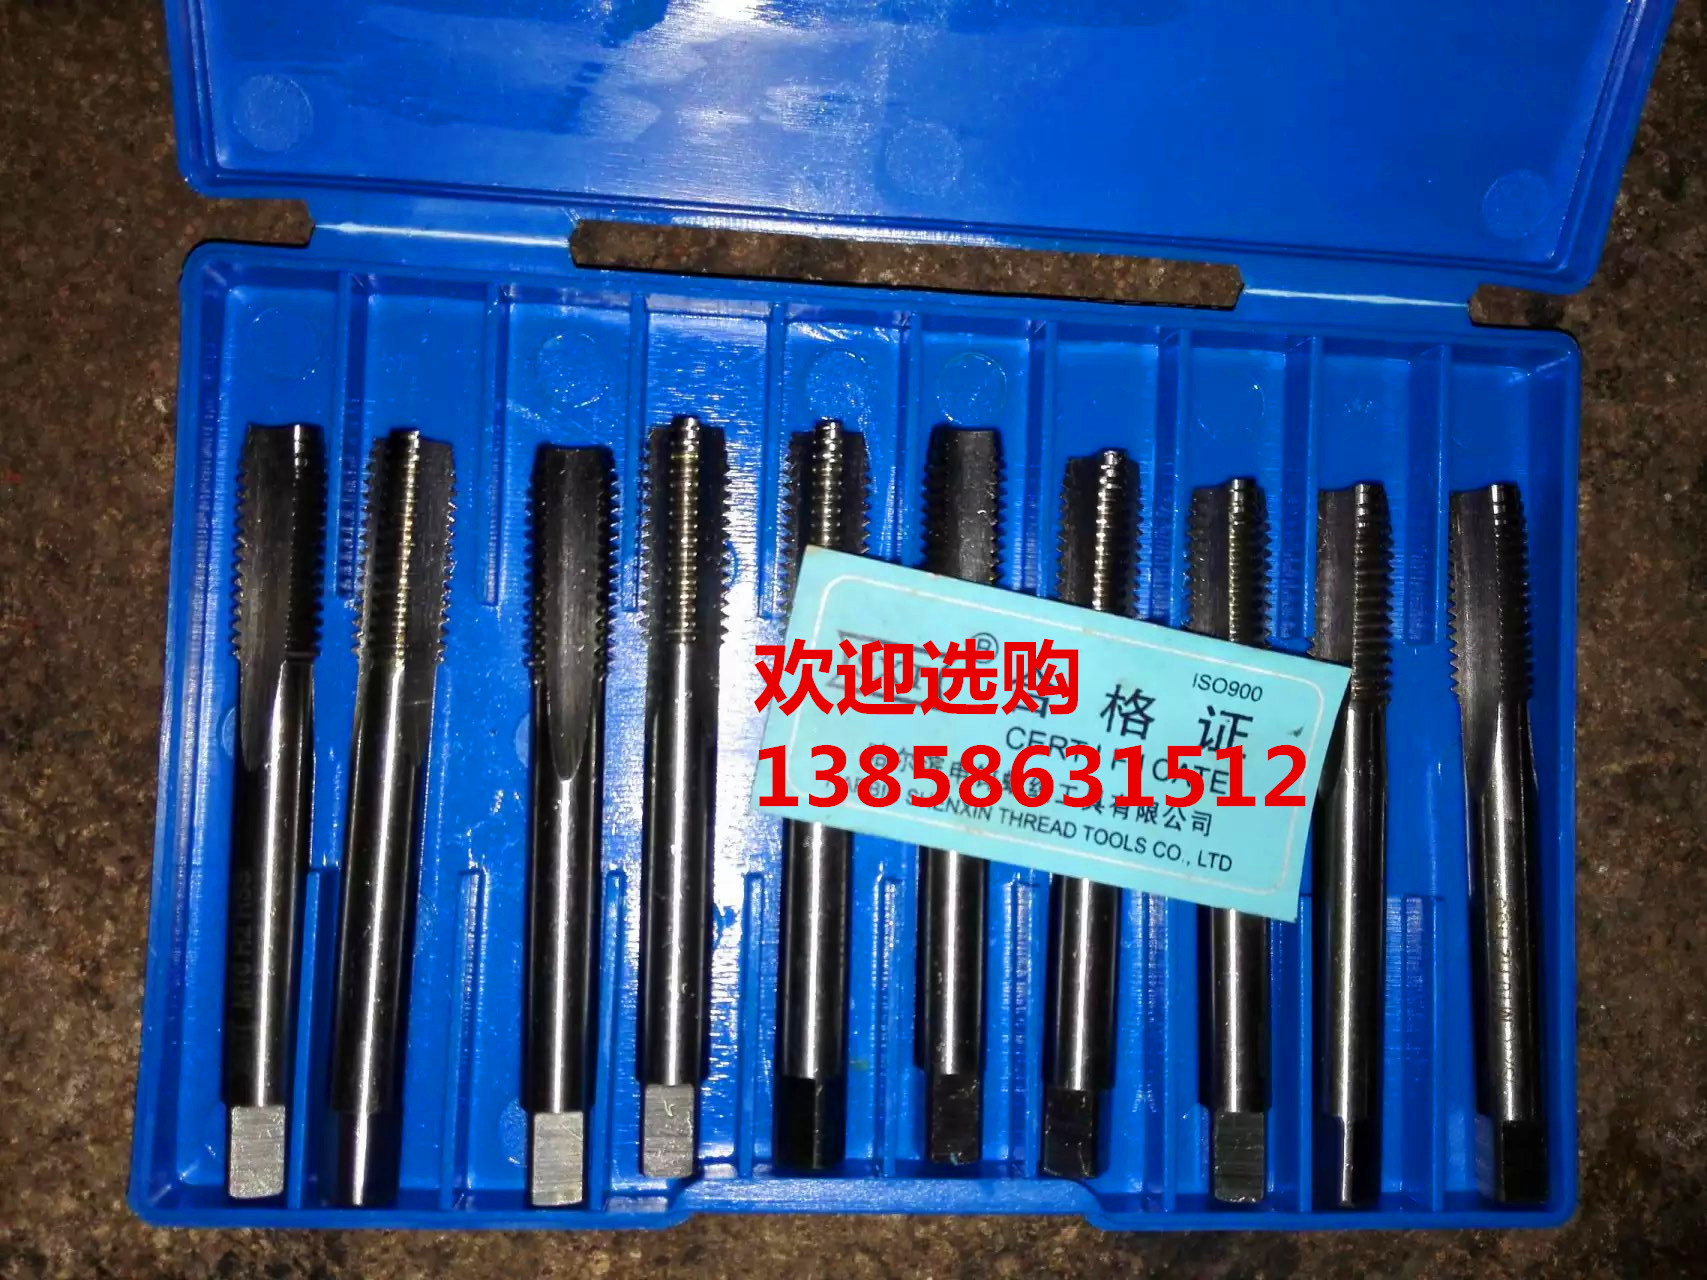 Harbin haliang wire tapping machine with M55M56M58M60M62M63X1.5*2*3*4*5*5.5 positive cone teeth